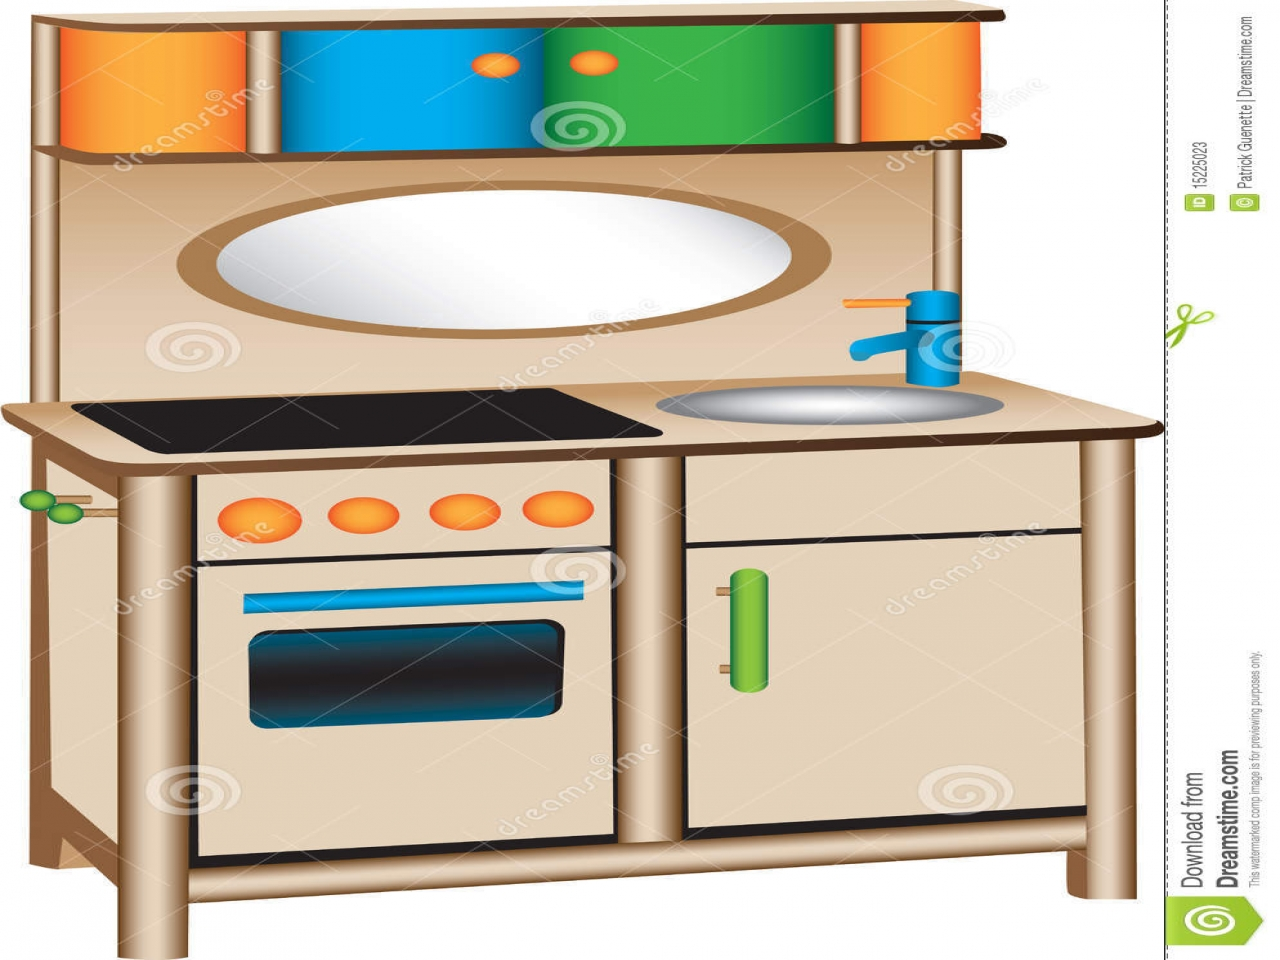 The Kitchen clipart kitchen play Kitchen 155209 Play and royalty